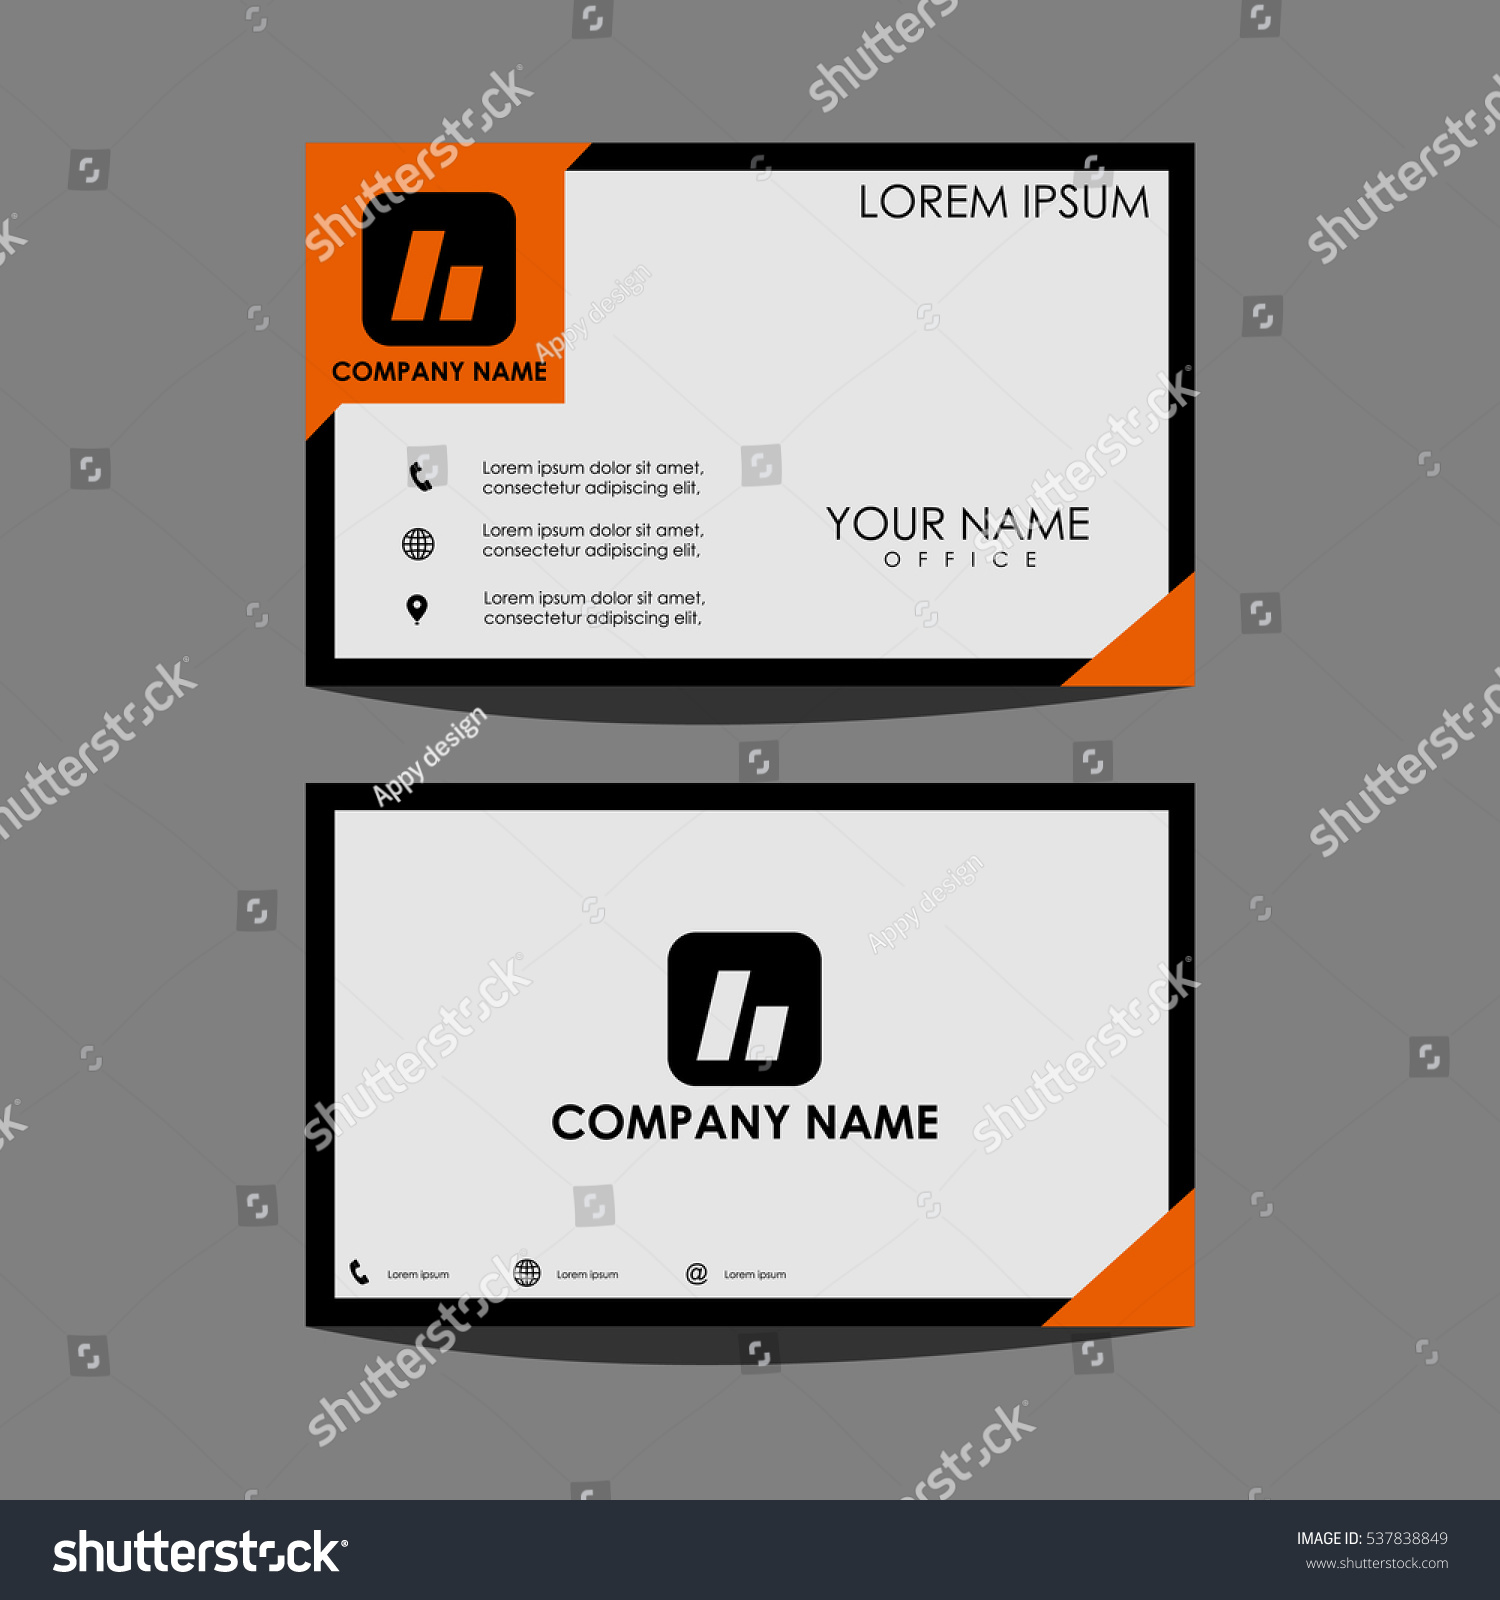 Famous Visitor Badge Template Pictures Inspiration Professional - Visitor badge template